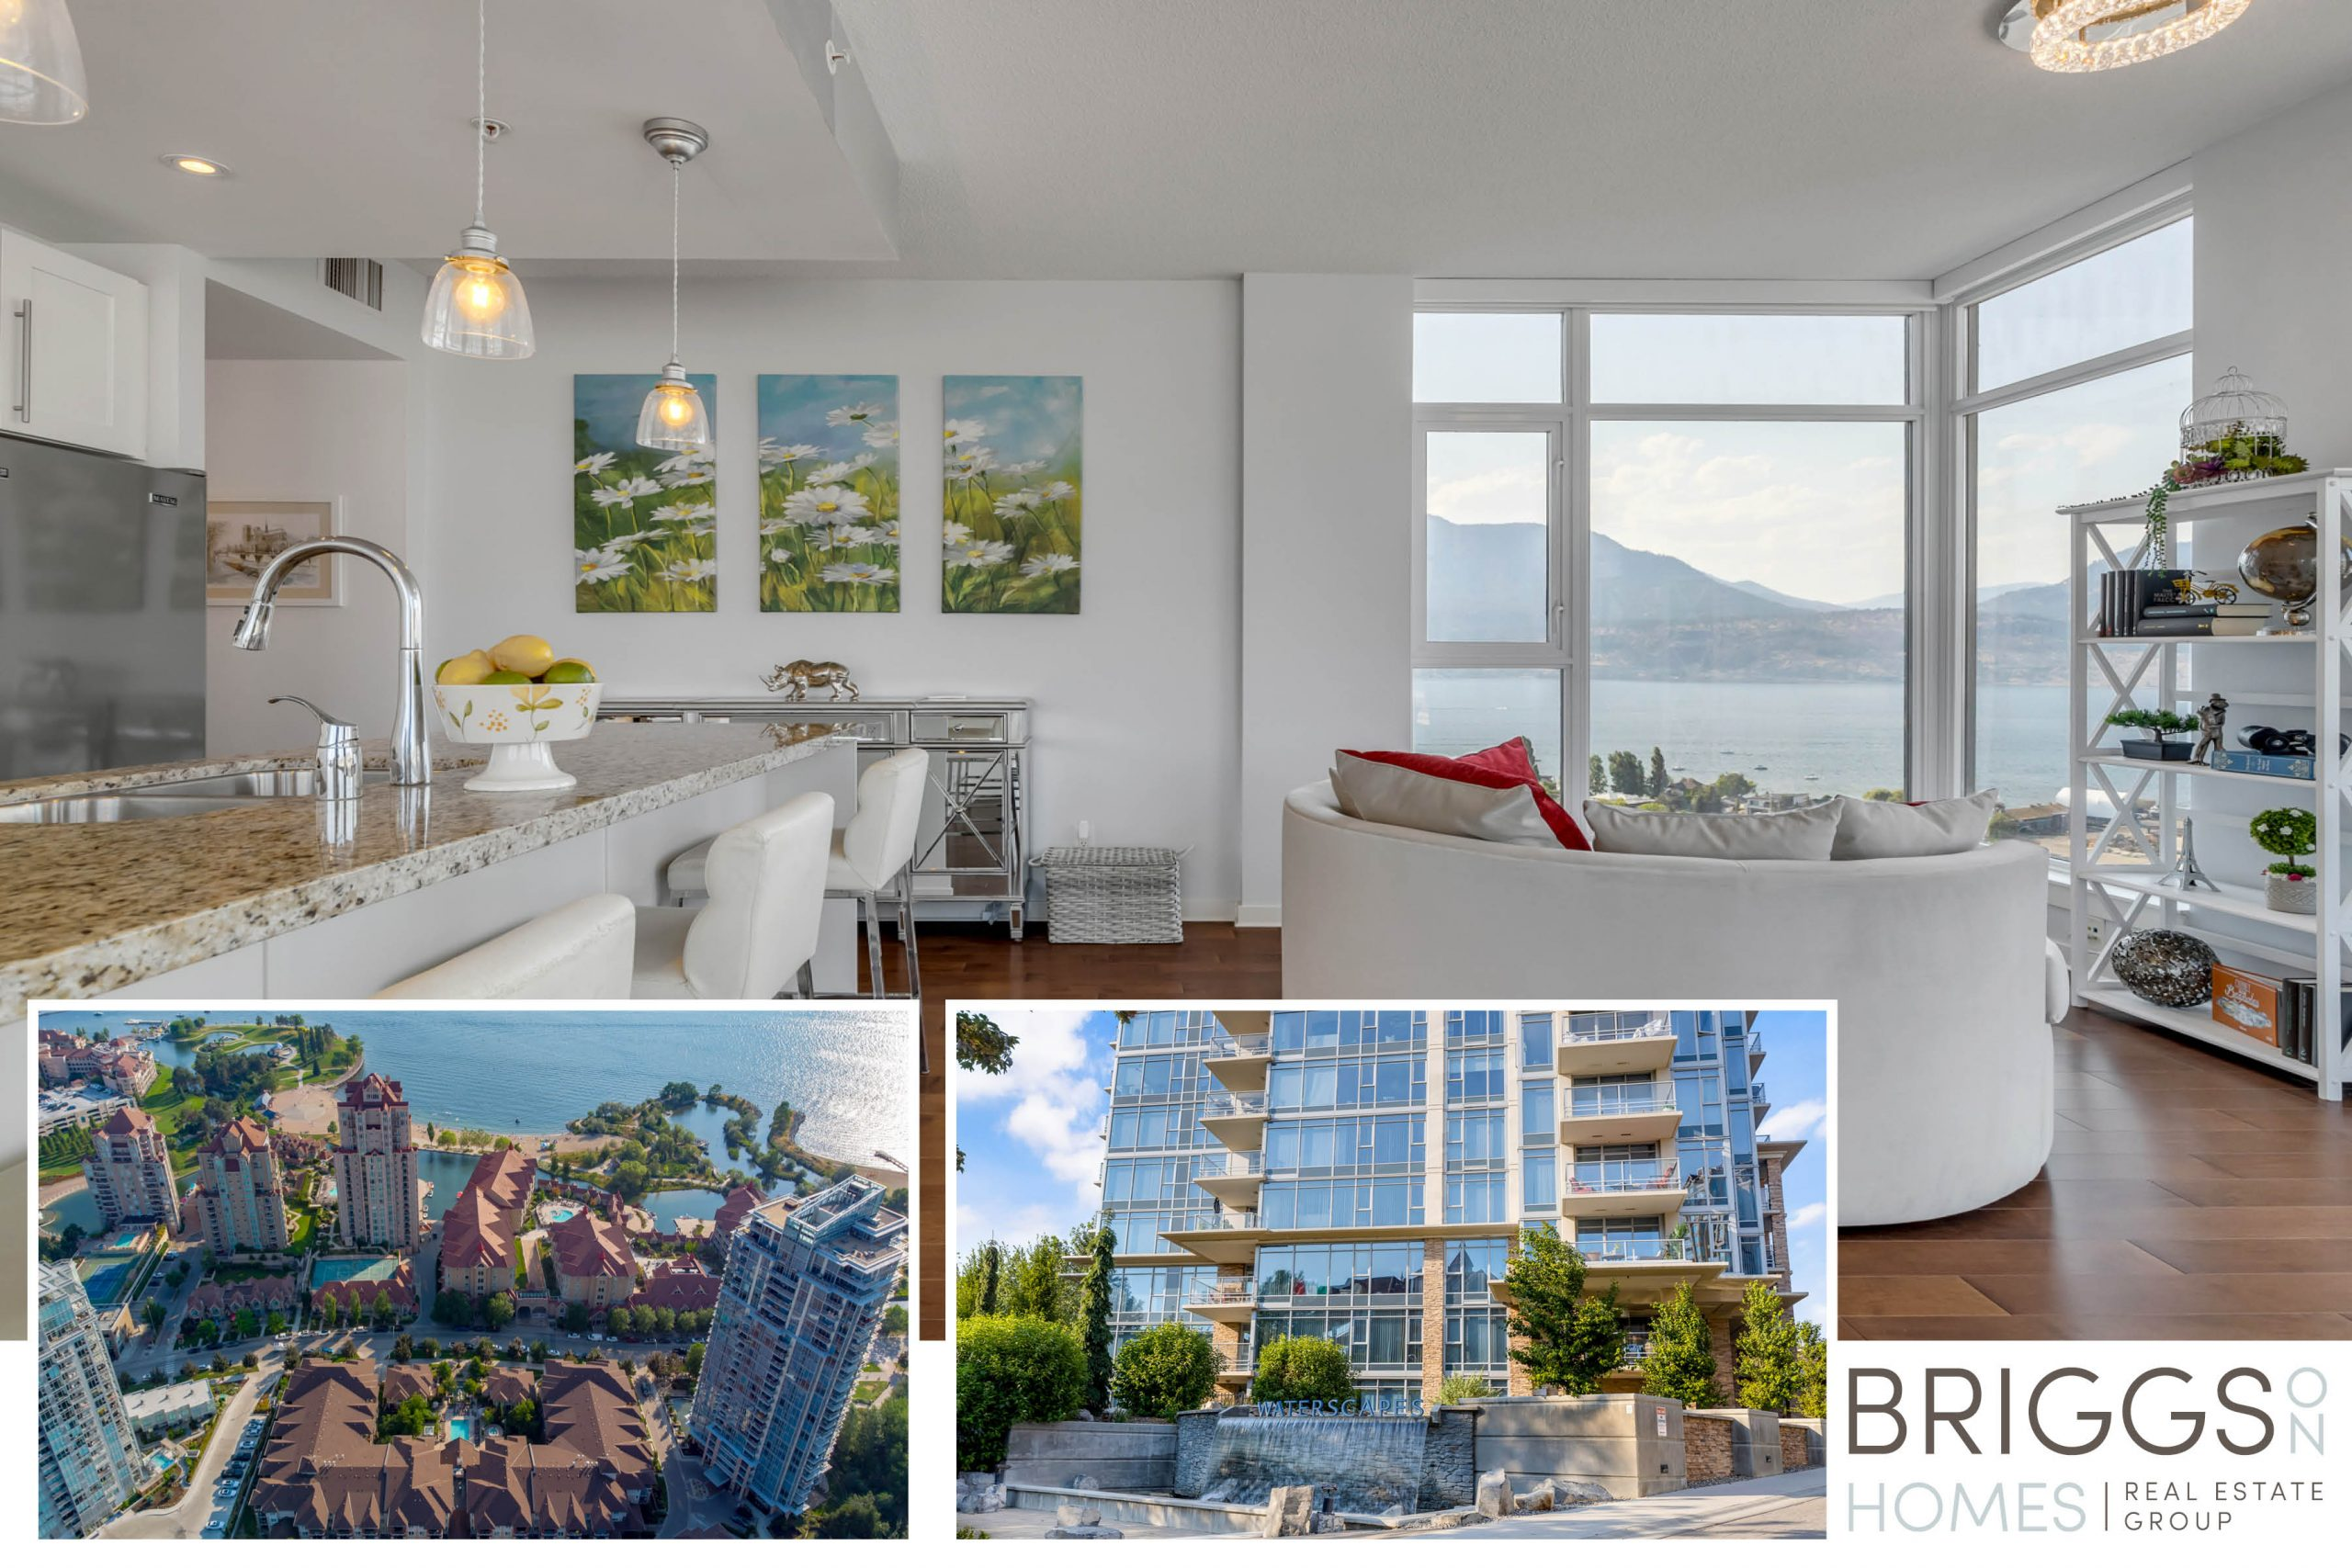 Just Listed Beautiful condo at Skye Waterscapes